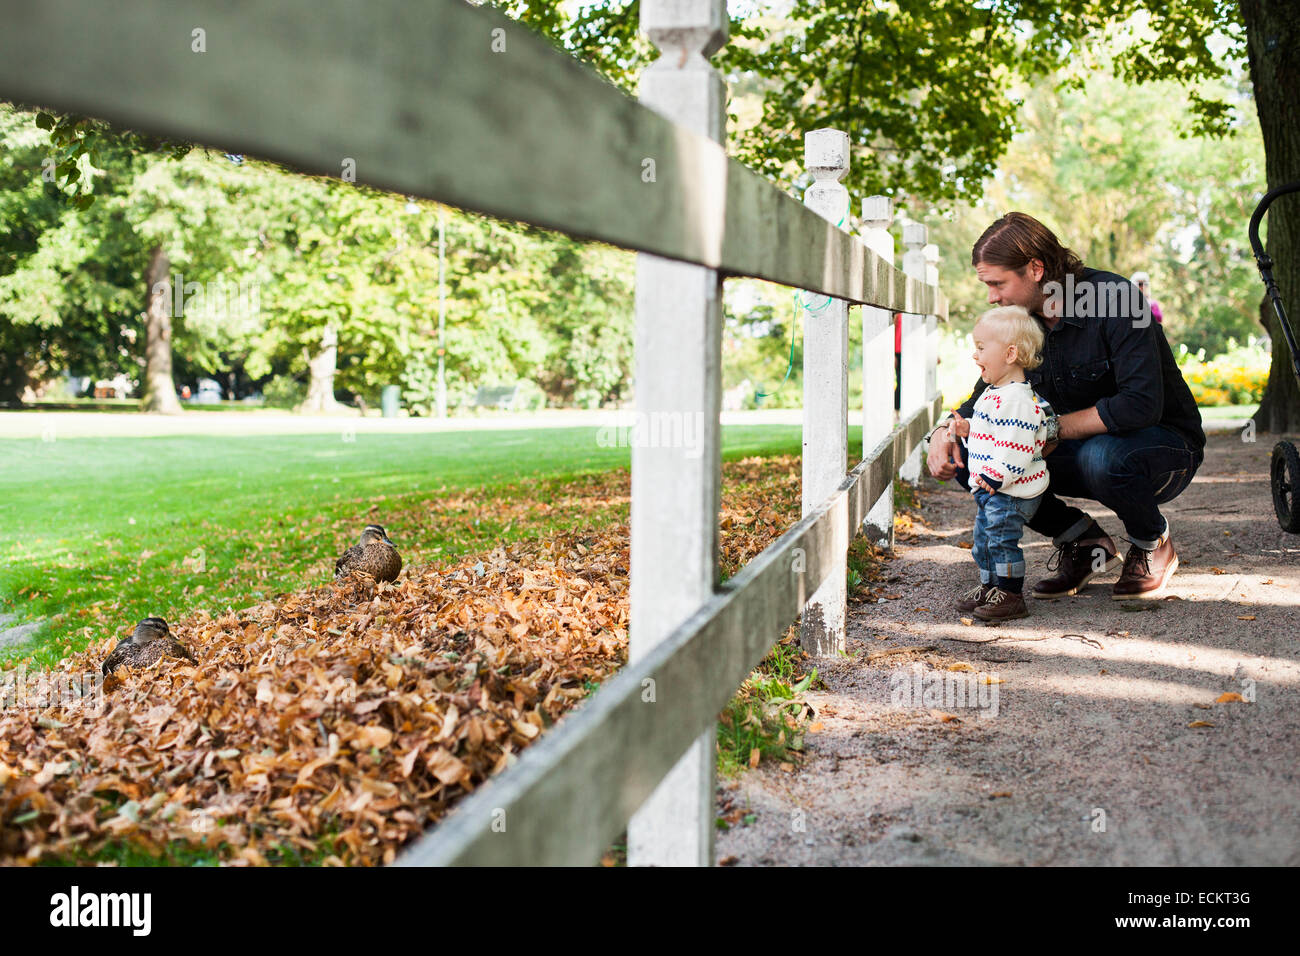 Father and baby girl looking at ducks through wooden fence in park - Stock Image